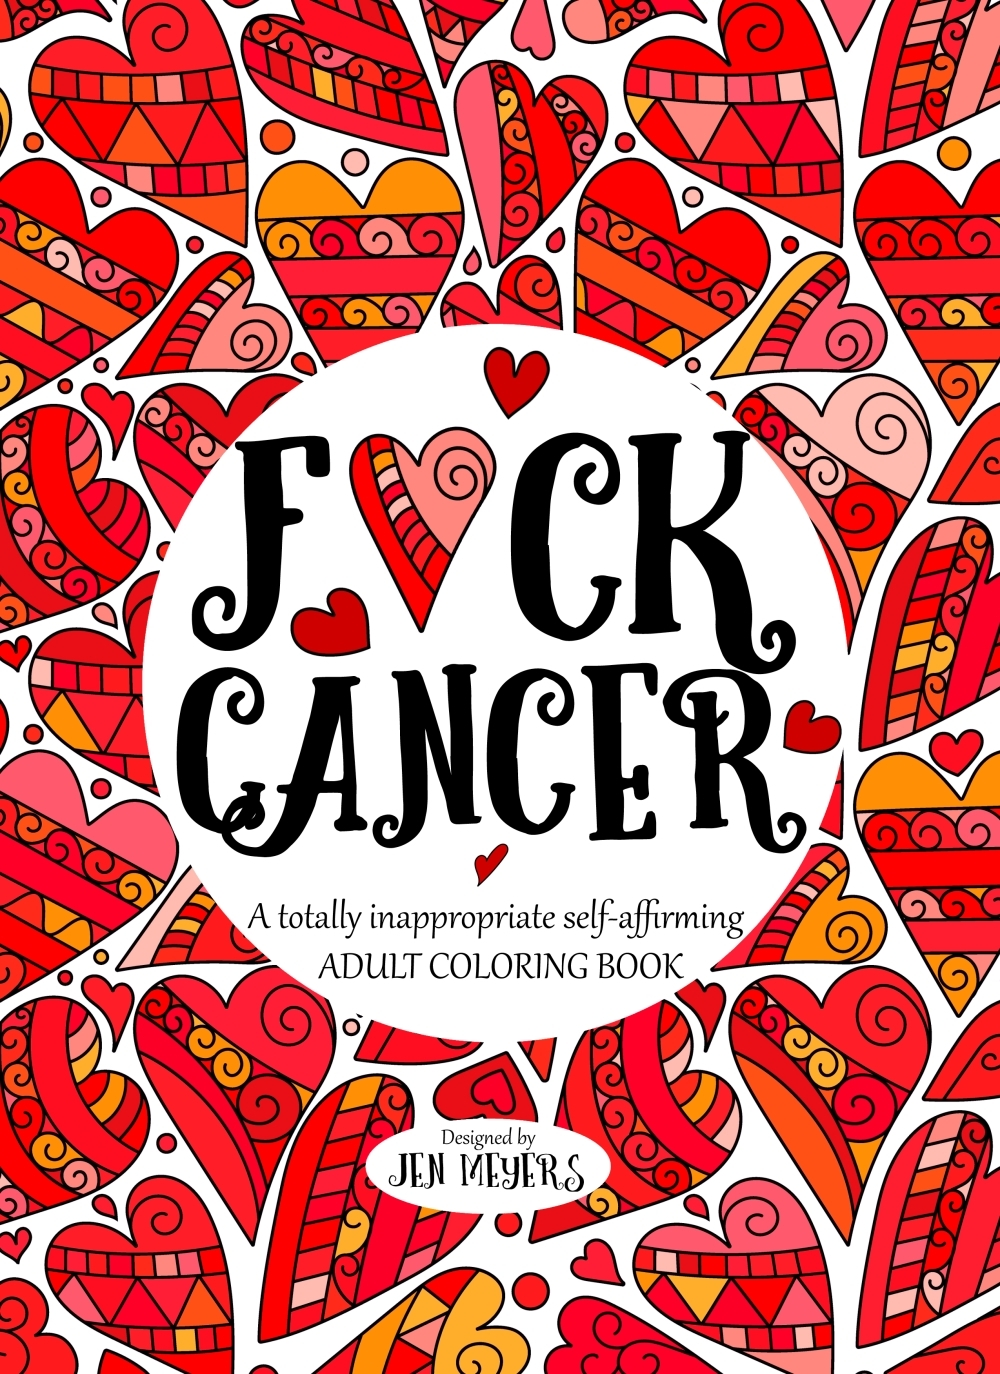 F*ck Cancer: A Totally Inappropriate Self-Affirming Adult Coloring Book